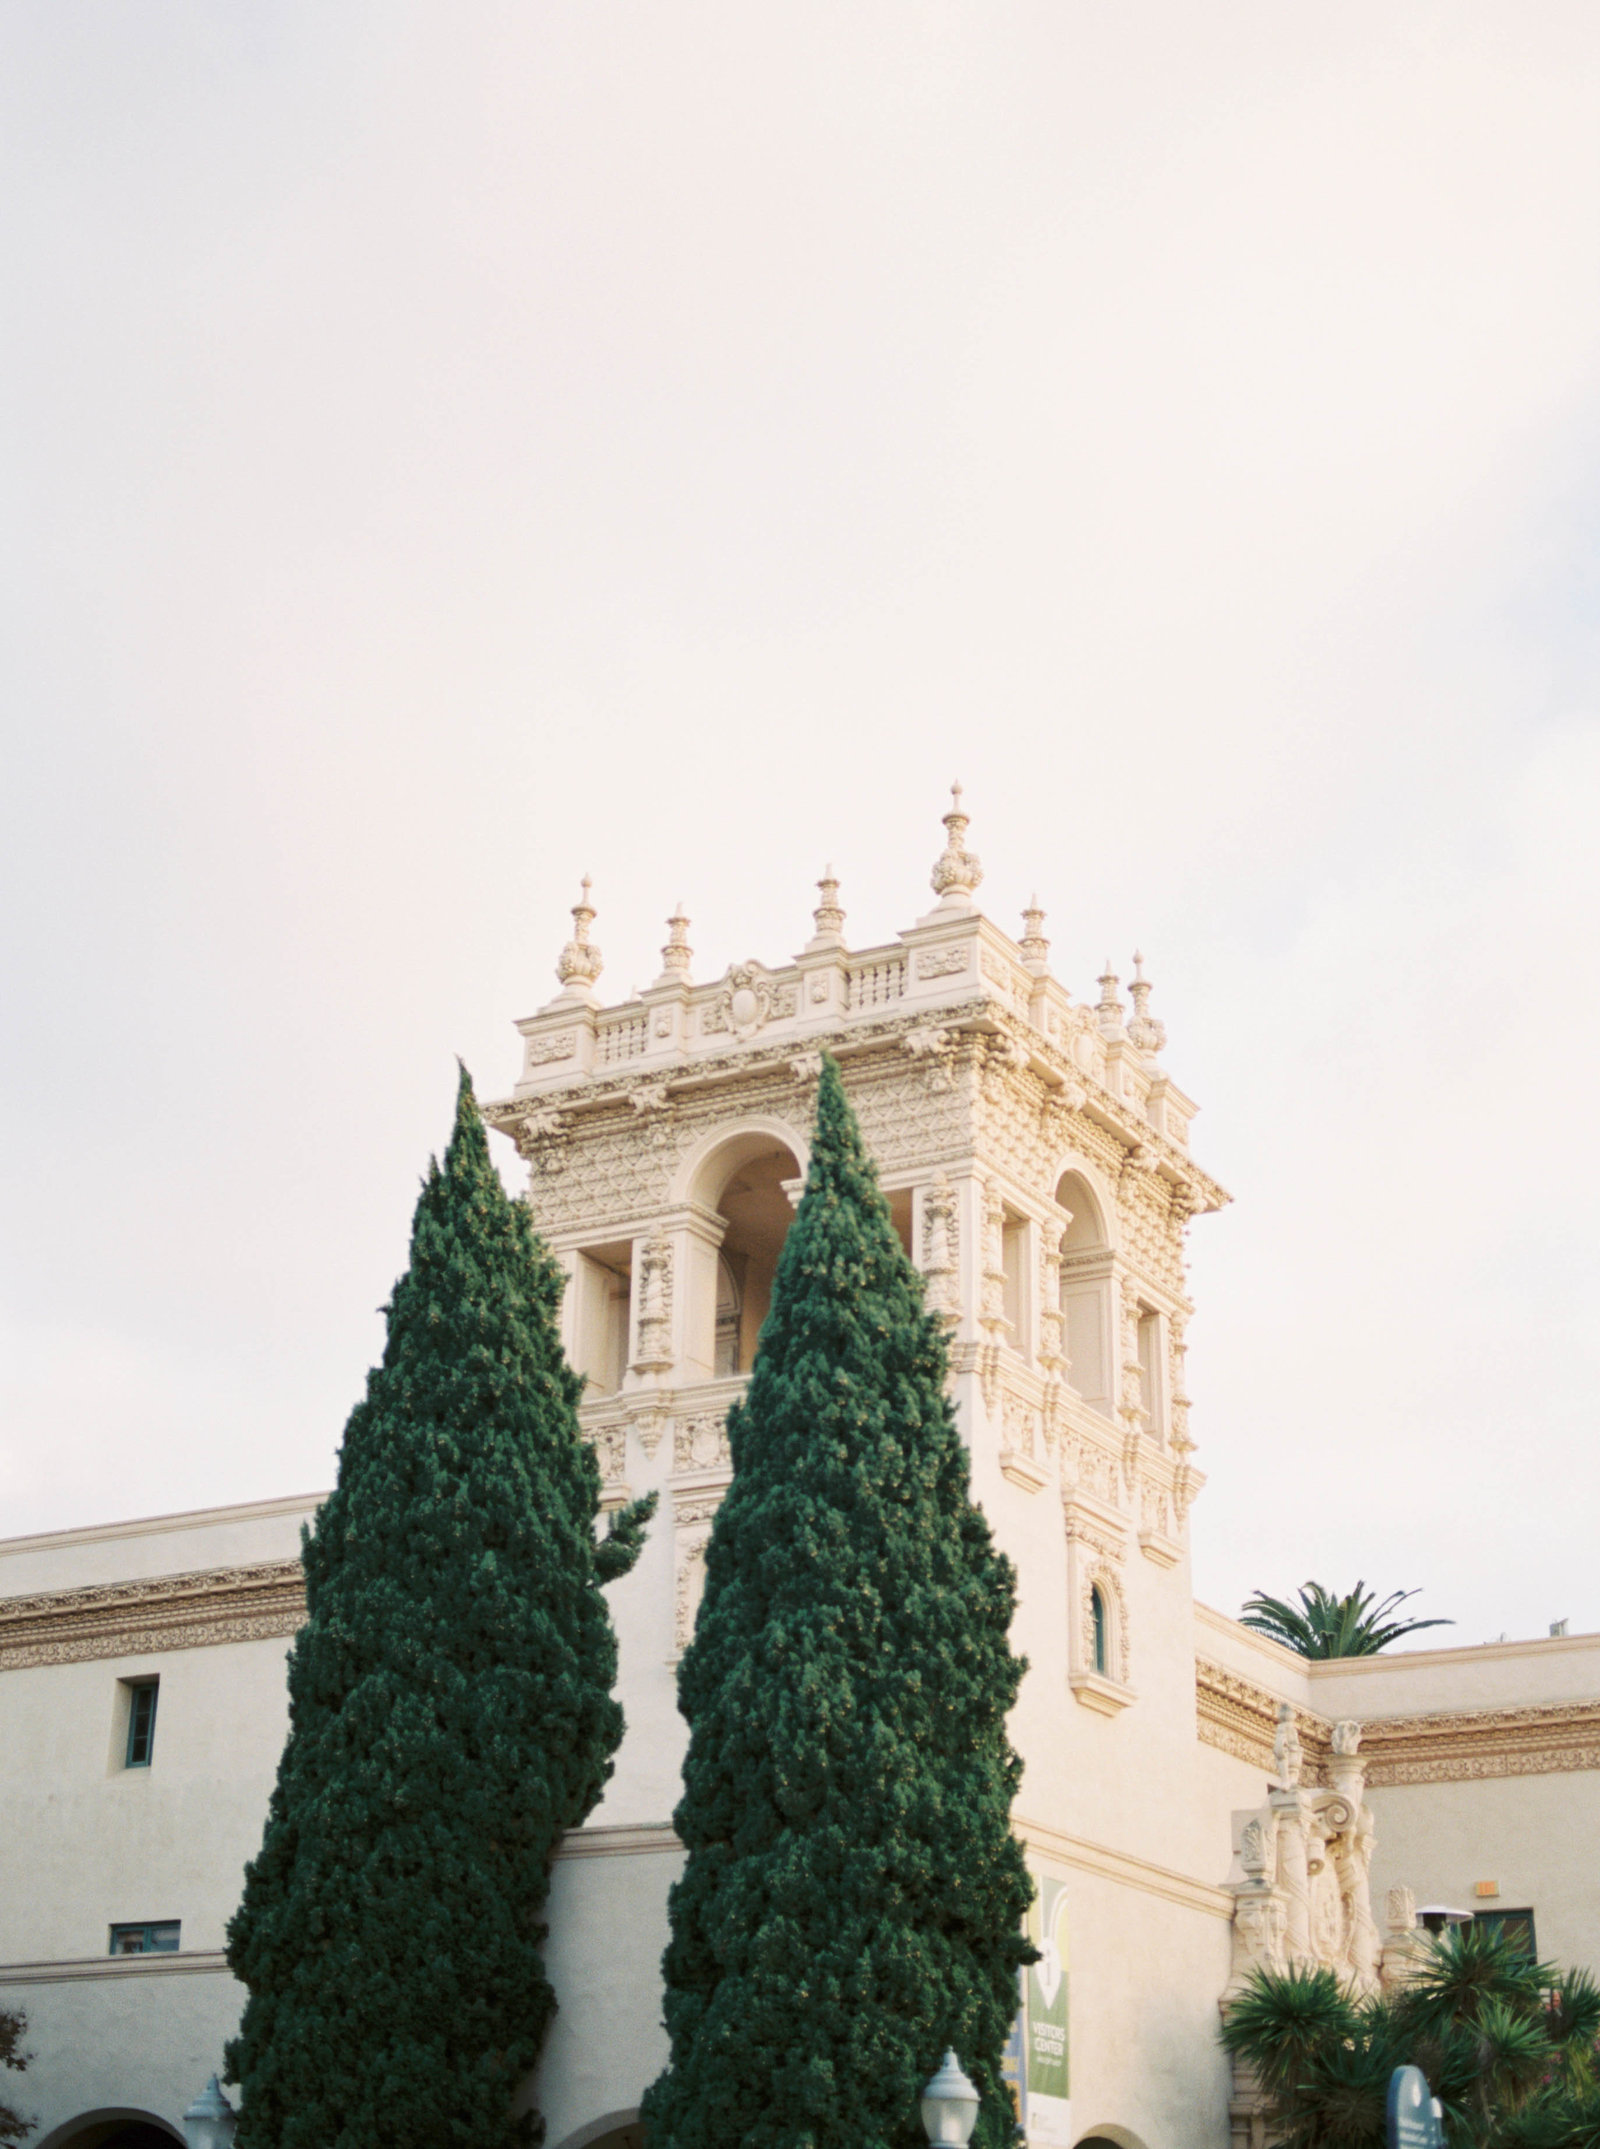 Fine art elegant romantic engagement session with stylish gold and black dress at Balboa Park in San Diego by Liz Andolina Photography